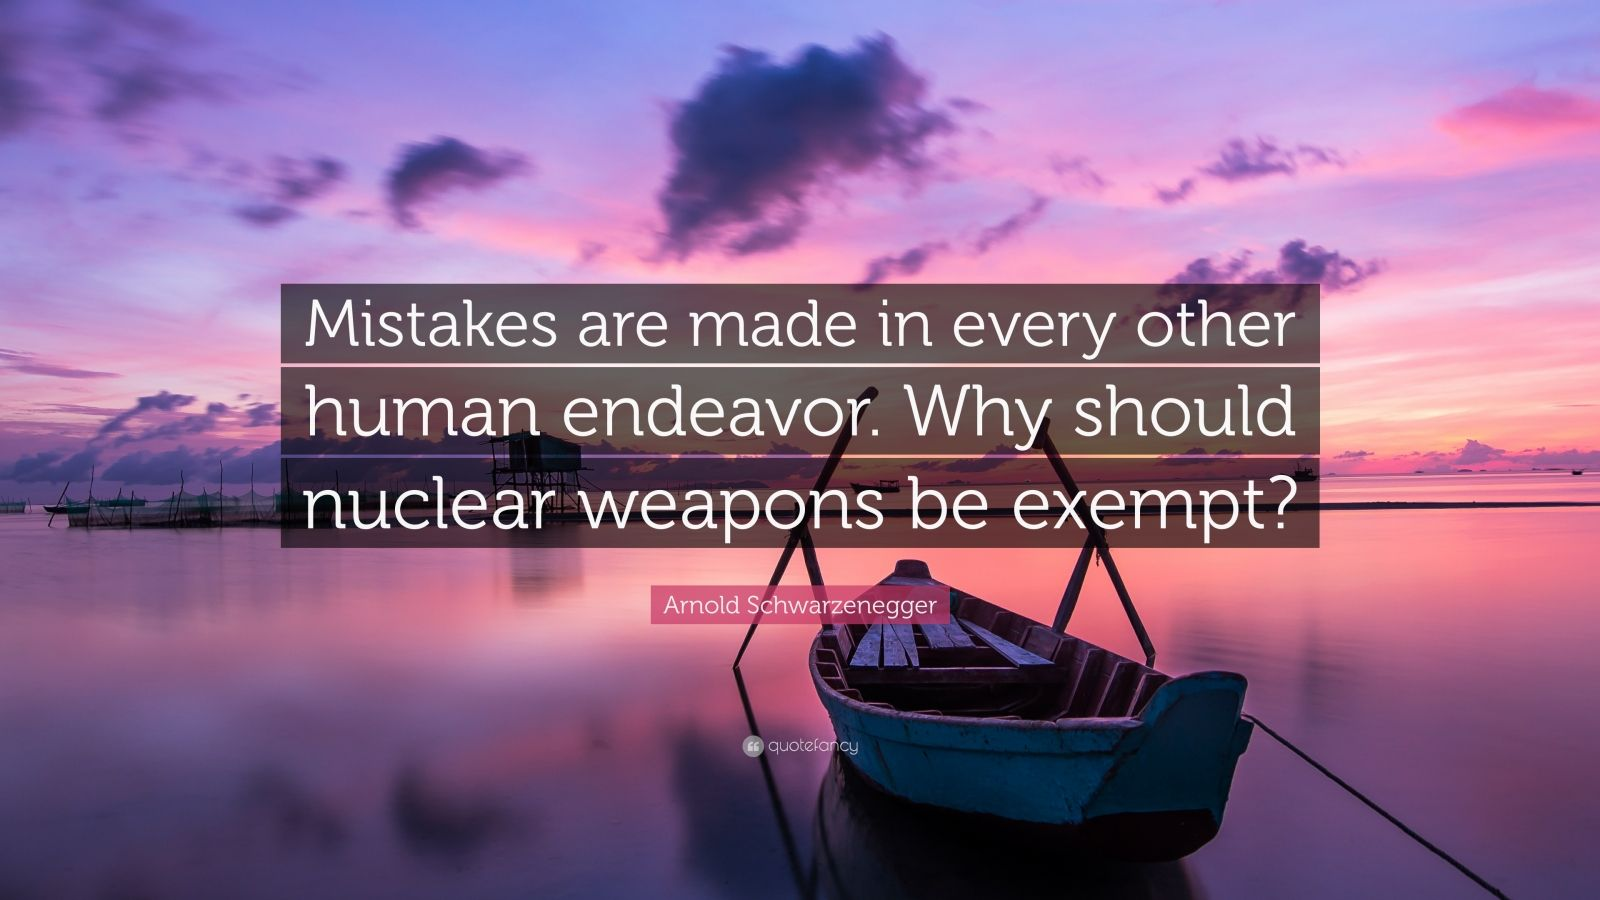 """Arnold Schwarzenegger Quote: """"Mistakes are made in every other human endeavor. Why should nuclear weapons be exempt?"""""""